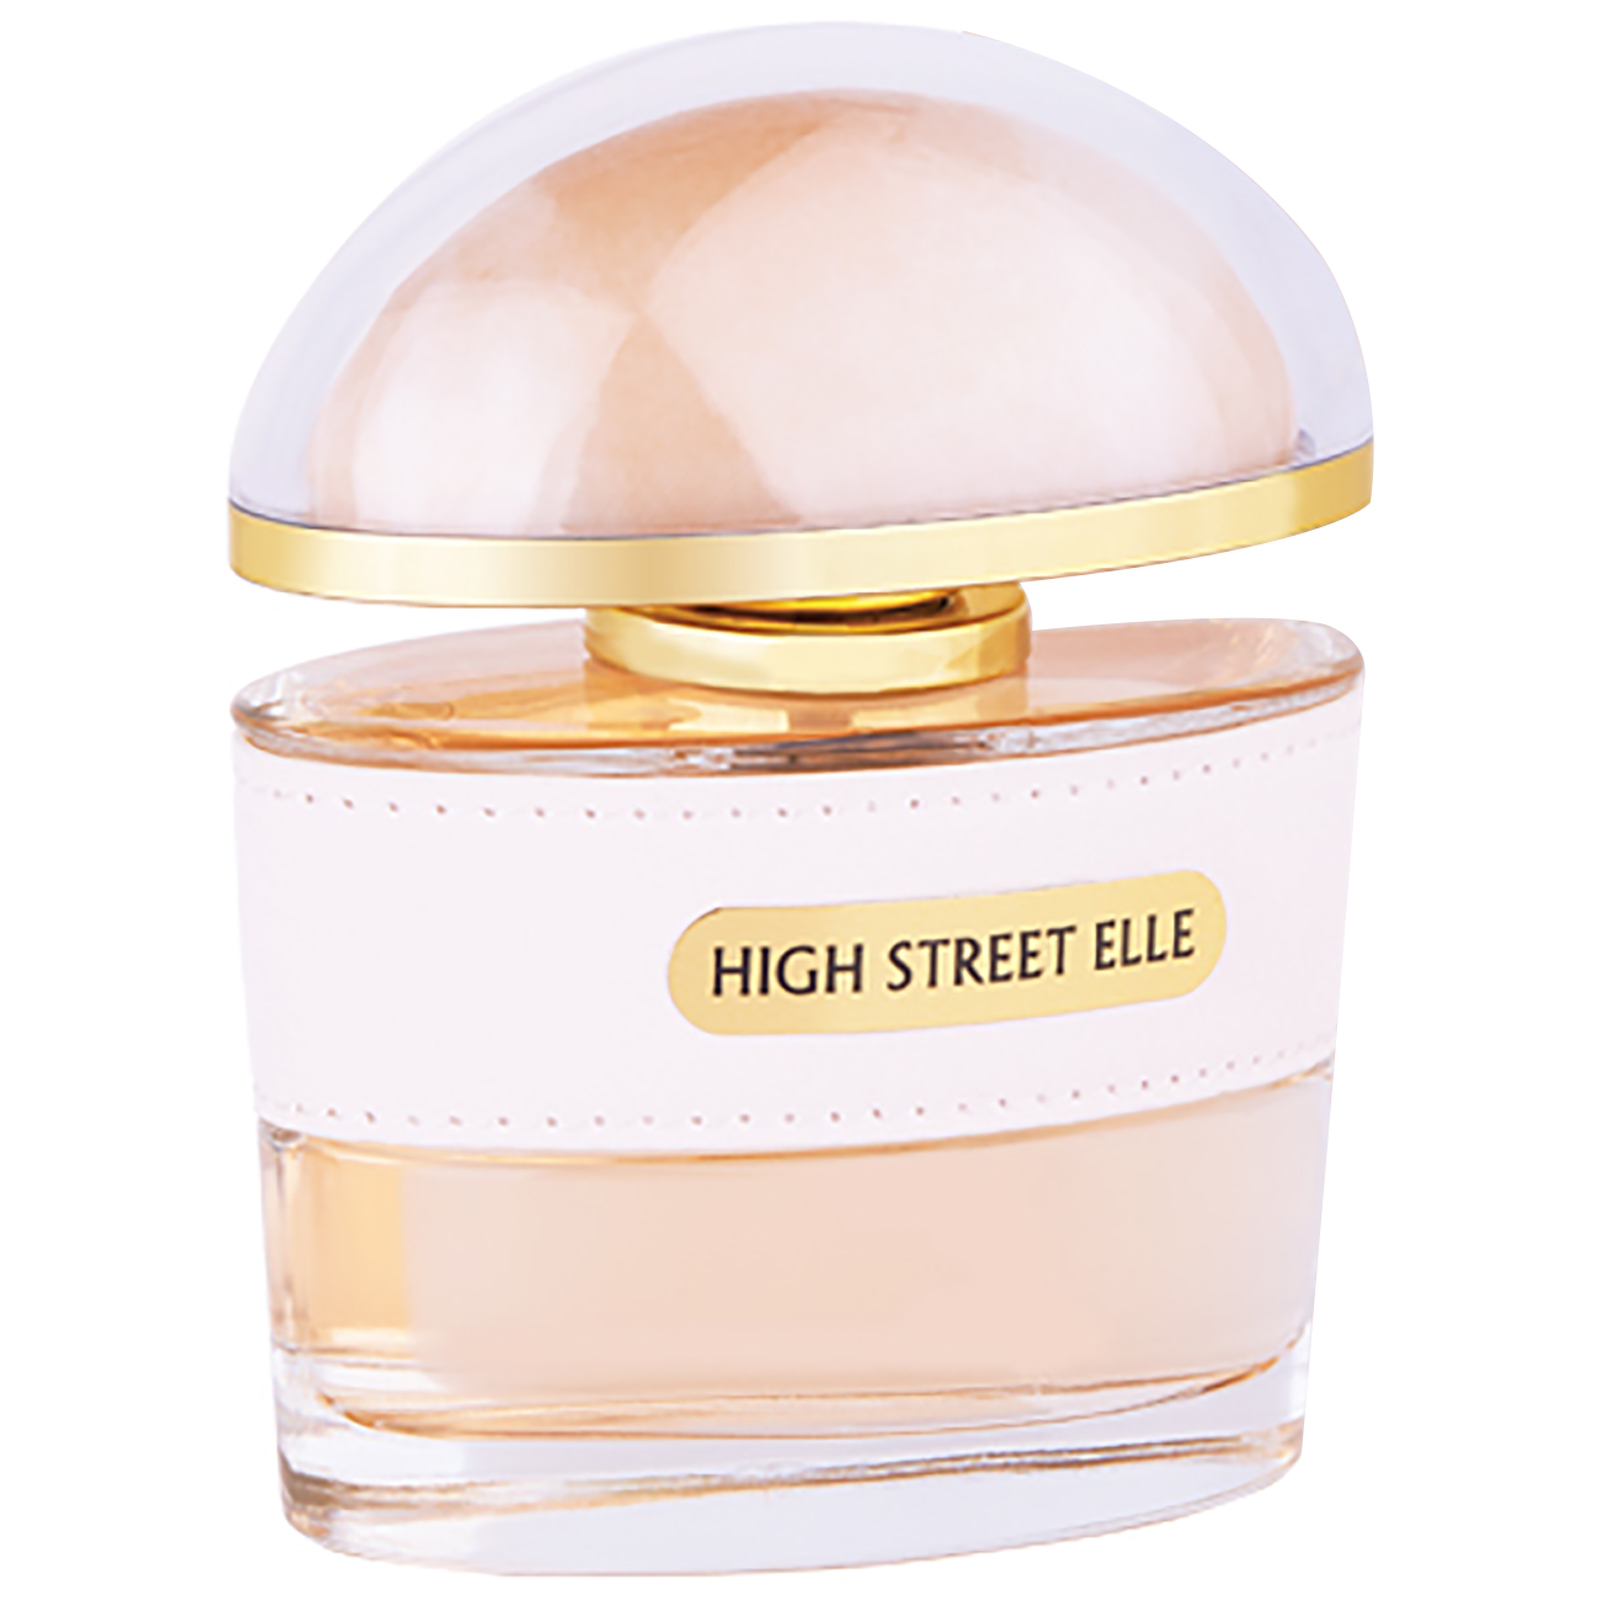 Armaf High Street Elle Eau de Parfum Spray 100ml